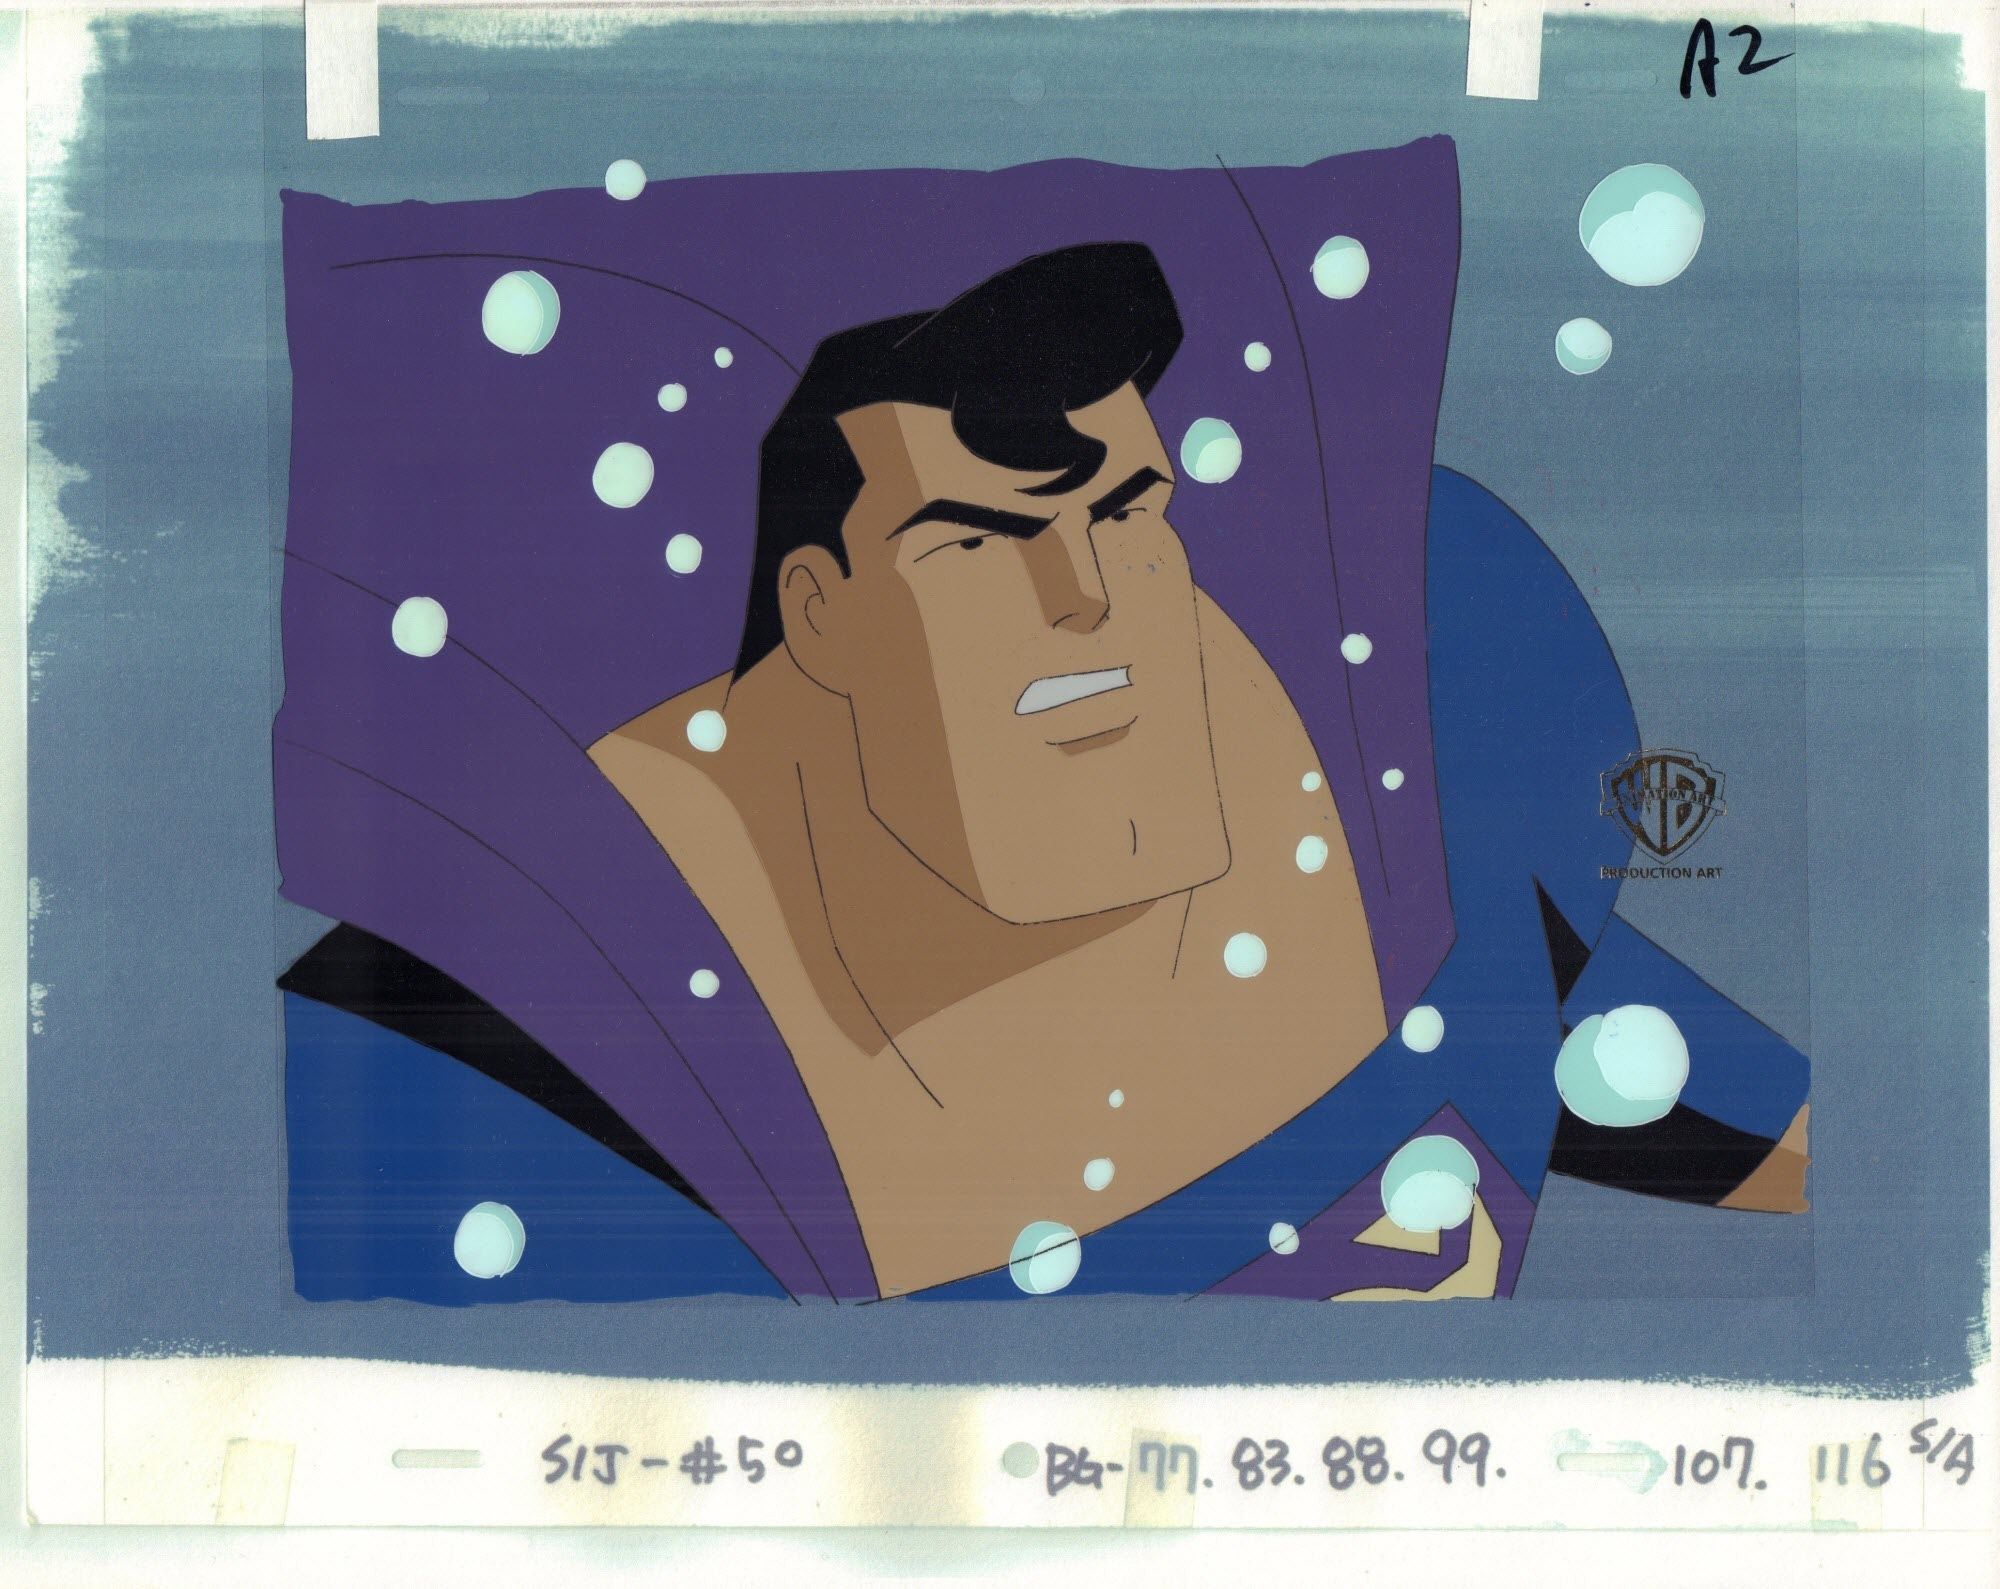 Superman: The Animated Series, A2